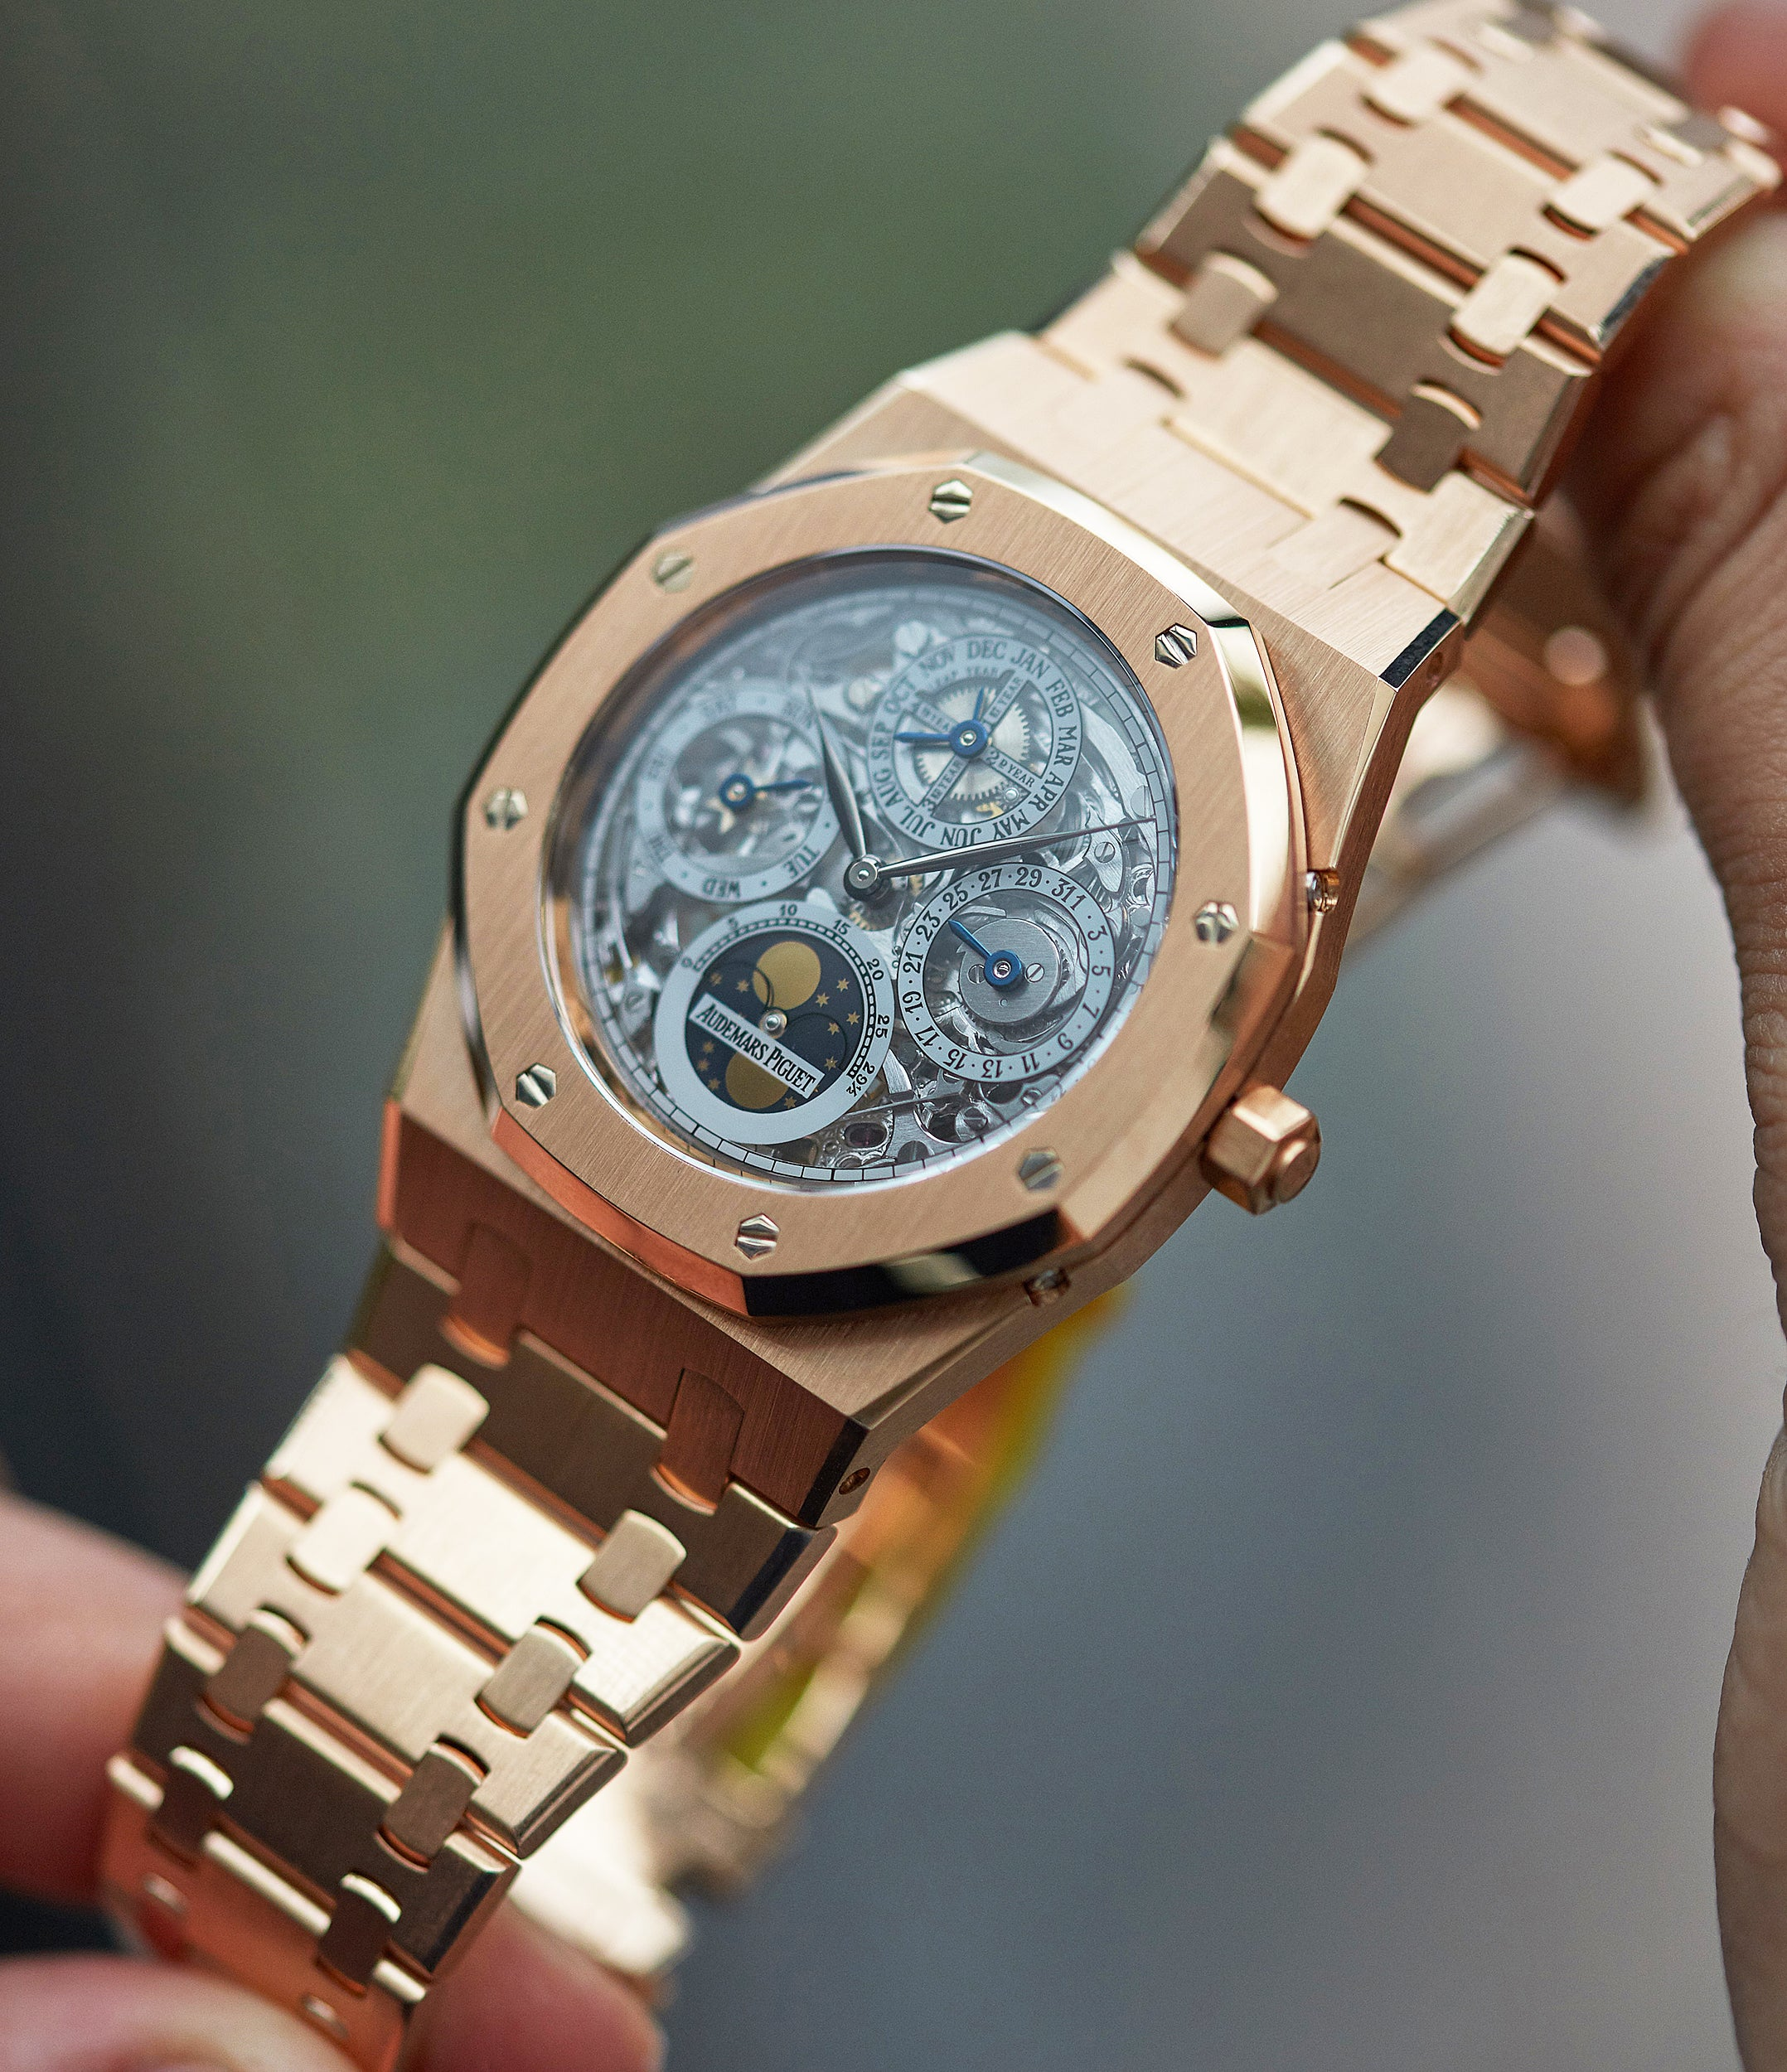 pre-owned Audemars Piguet Royal Oak Quantieme Perpetual Calendar 25829OR rose gold skeletonised sport watch for sale online at A Collected Man London UK specialist of rare watches